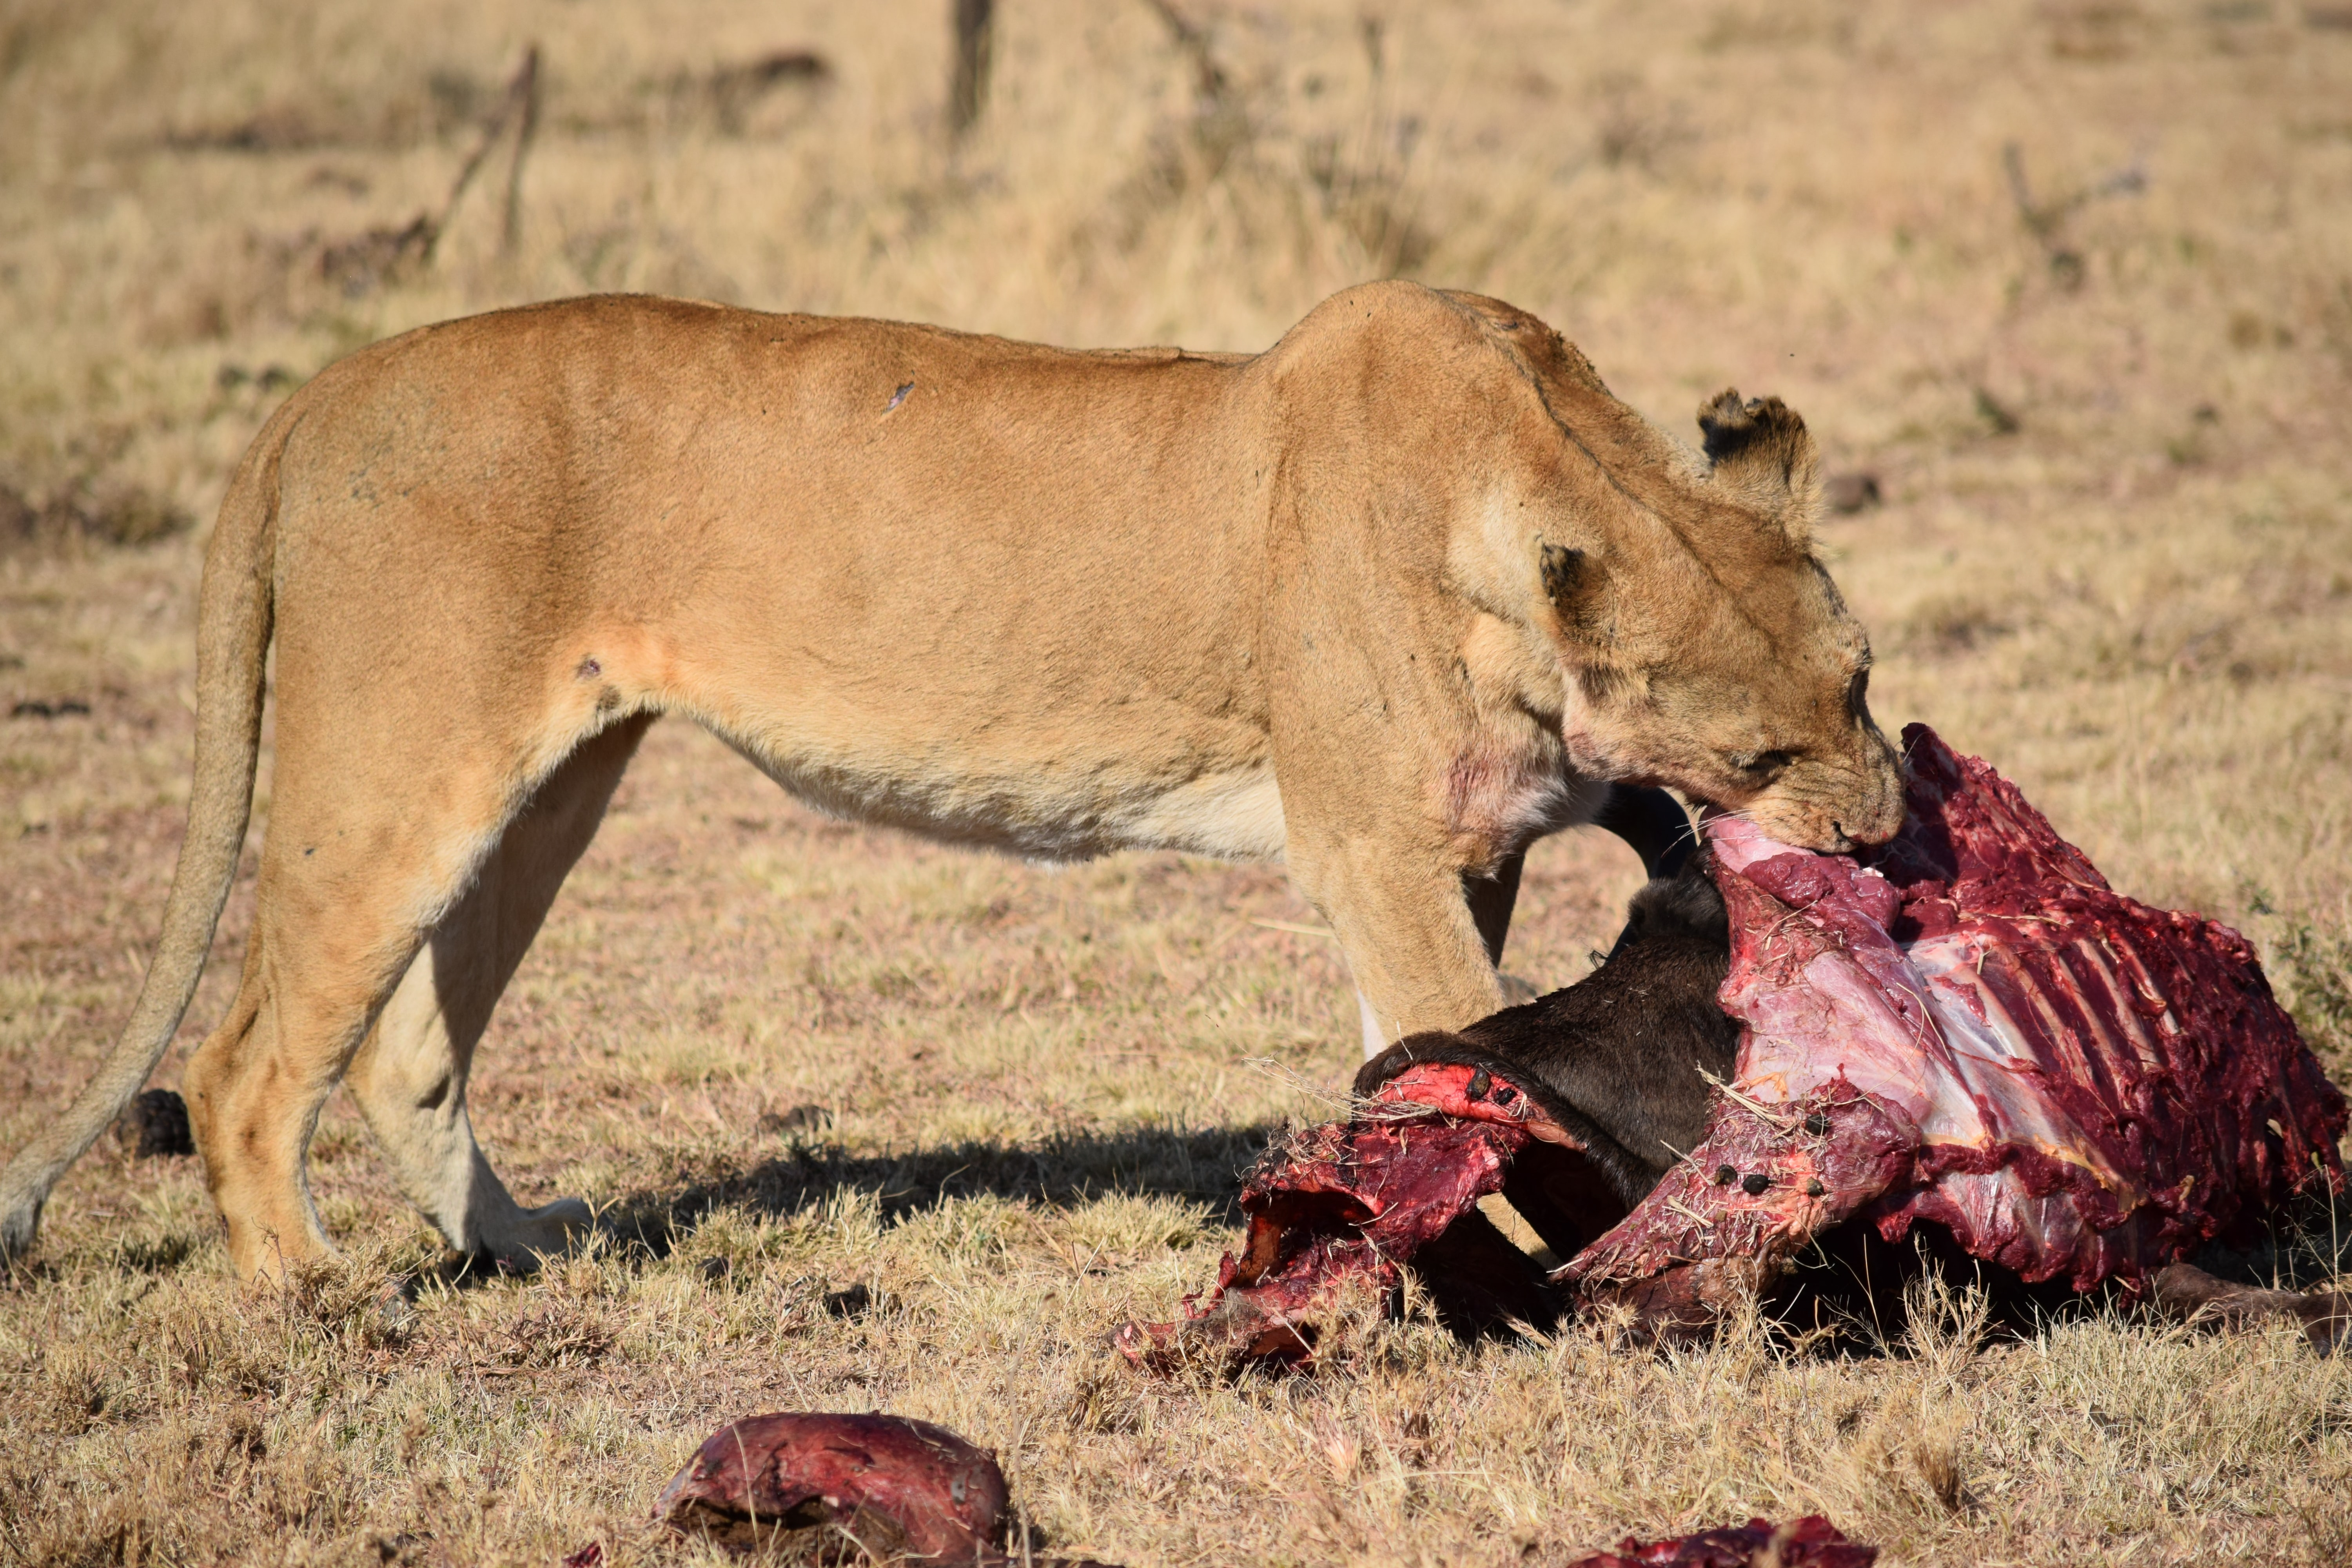 lioness eating meat at daytime